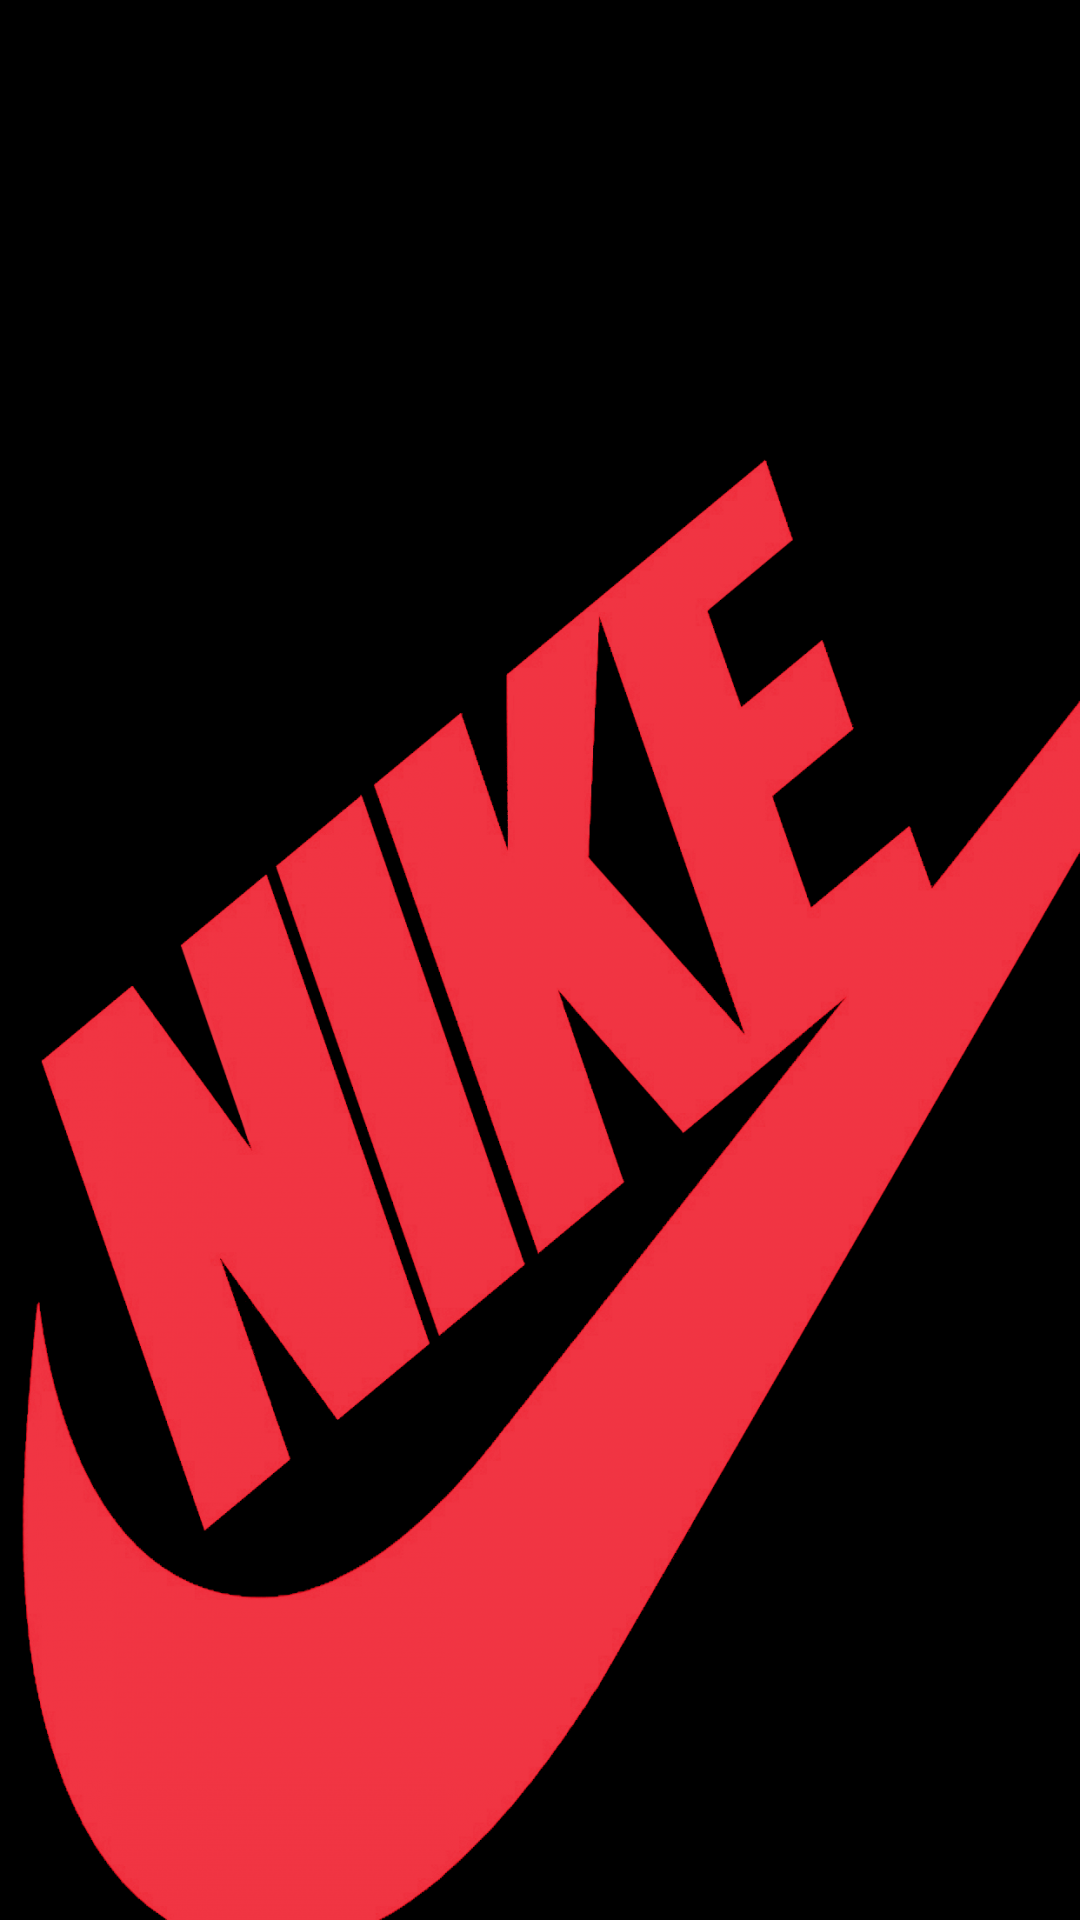 Nike Red Hd Wallpaper Android Nike Logo Wallpapers Nike Wallpaper Iphone Nike Wallpaper